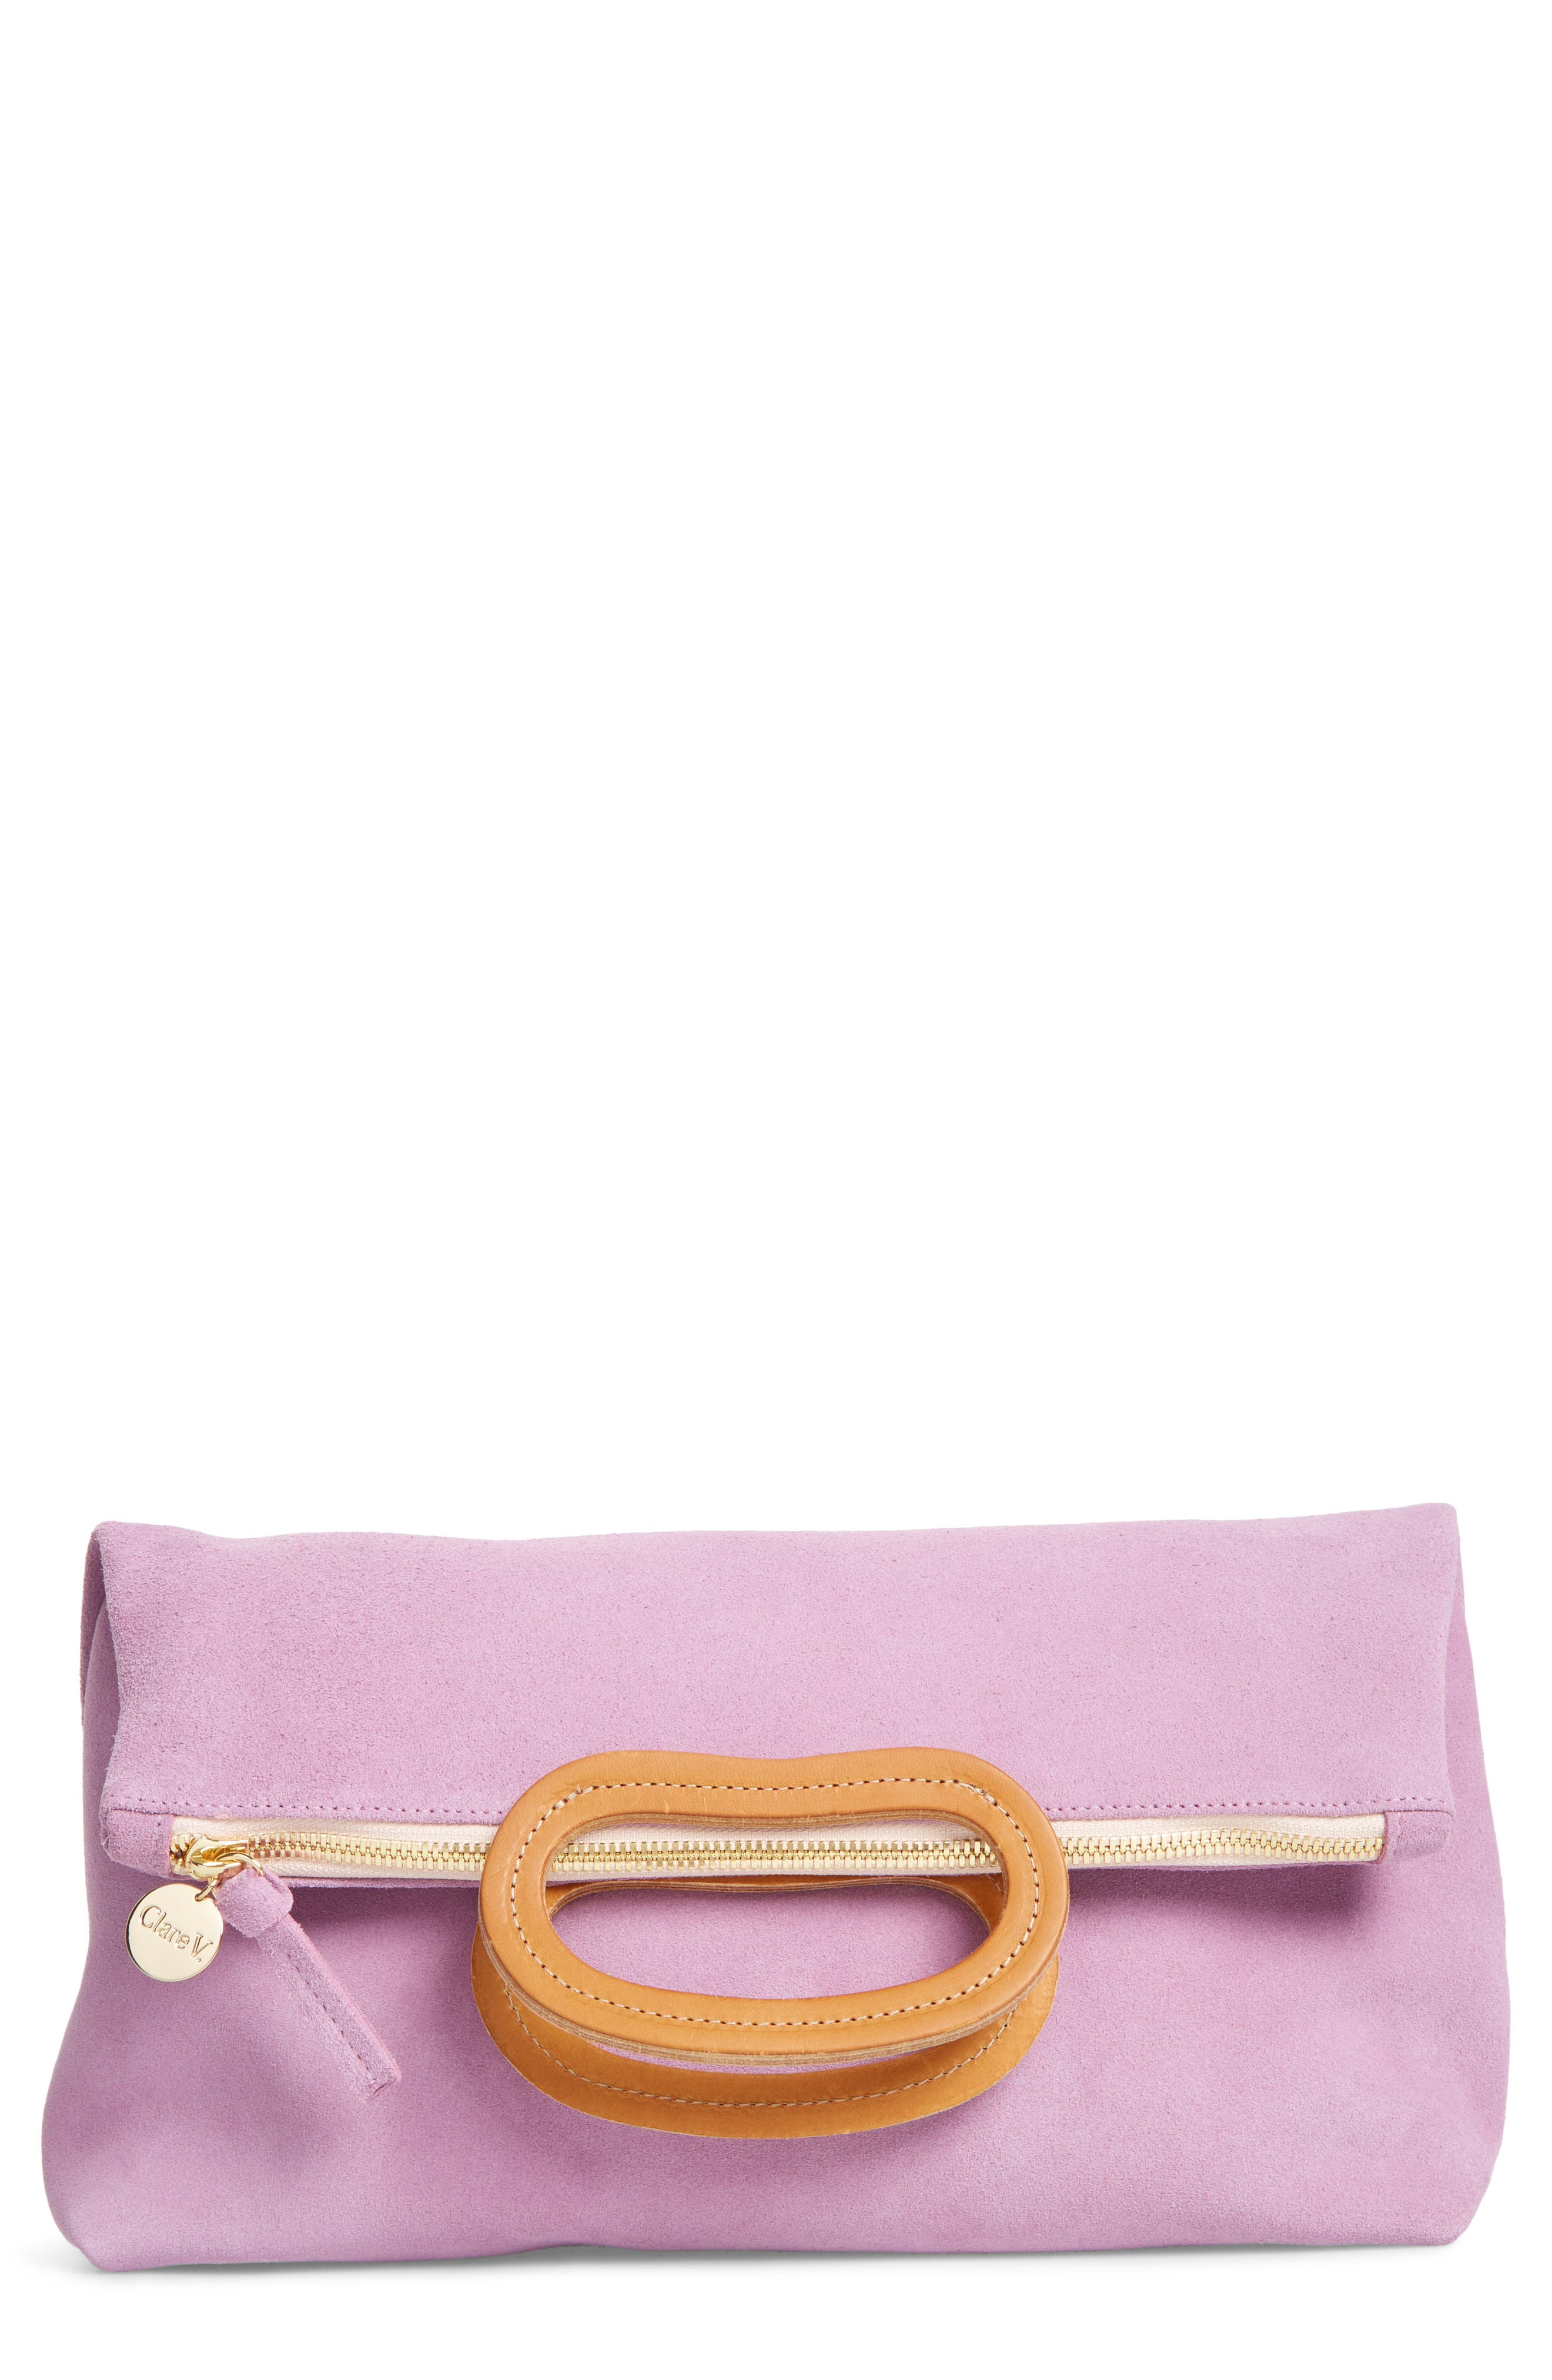 Marcelle Maison Leather Tote,                         Main,                         color, 530